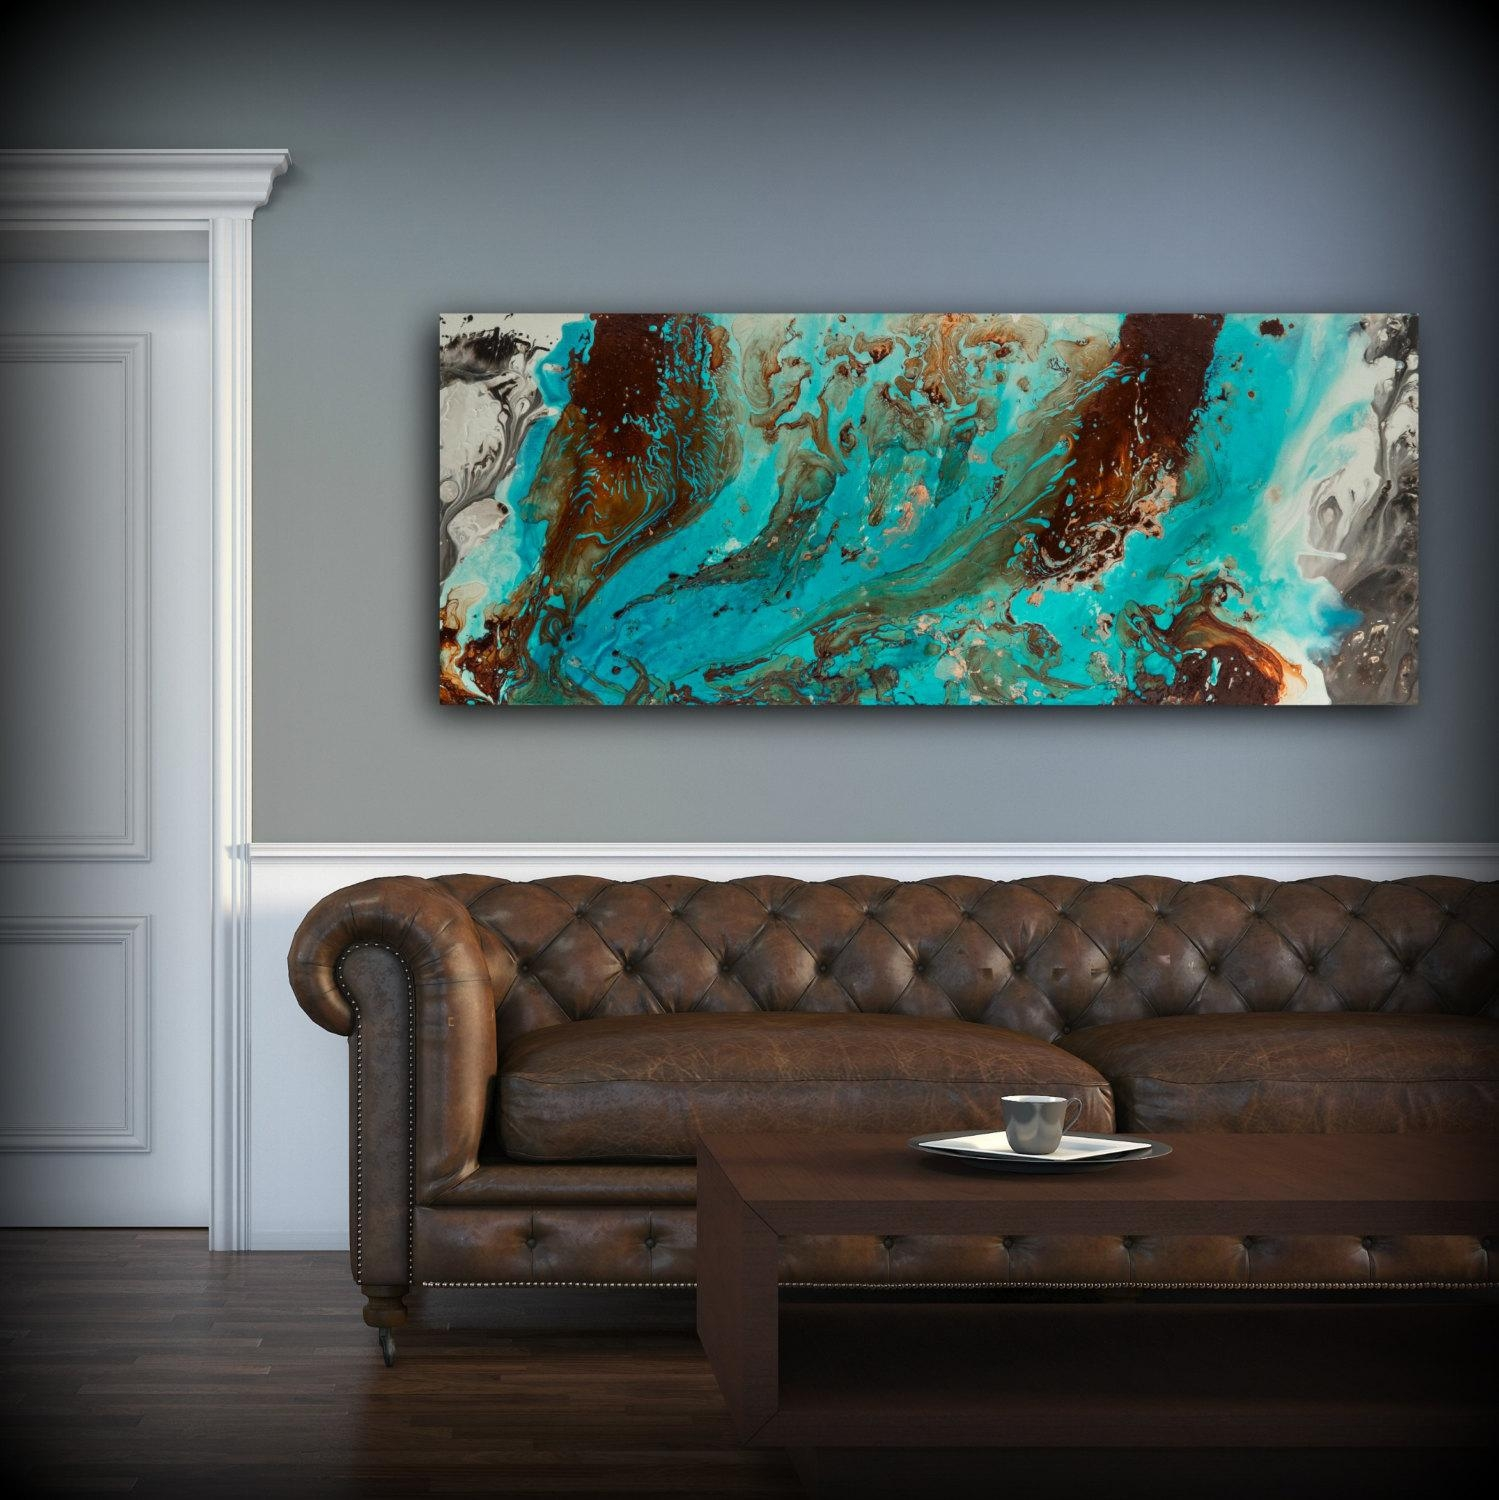 Aqua Print Blue And Brown Wall Art Decor Colourful Bohemian Intended For Teal And Green Wall Art (View 4 of 20)